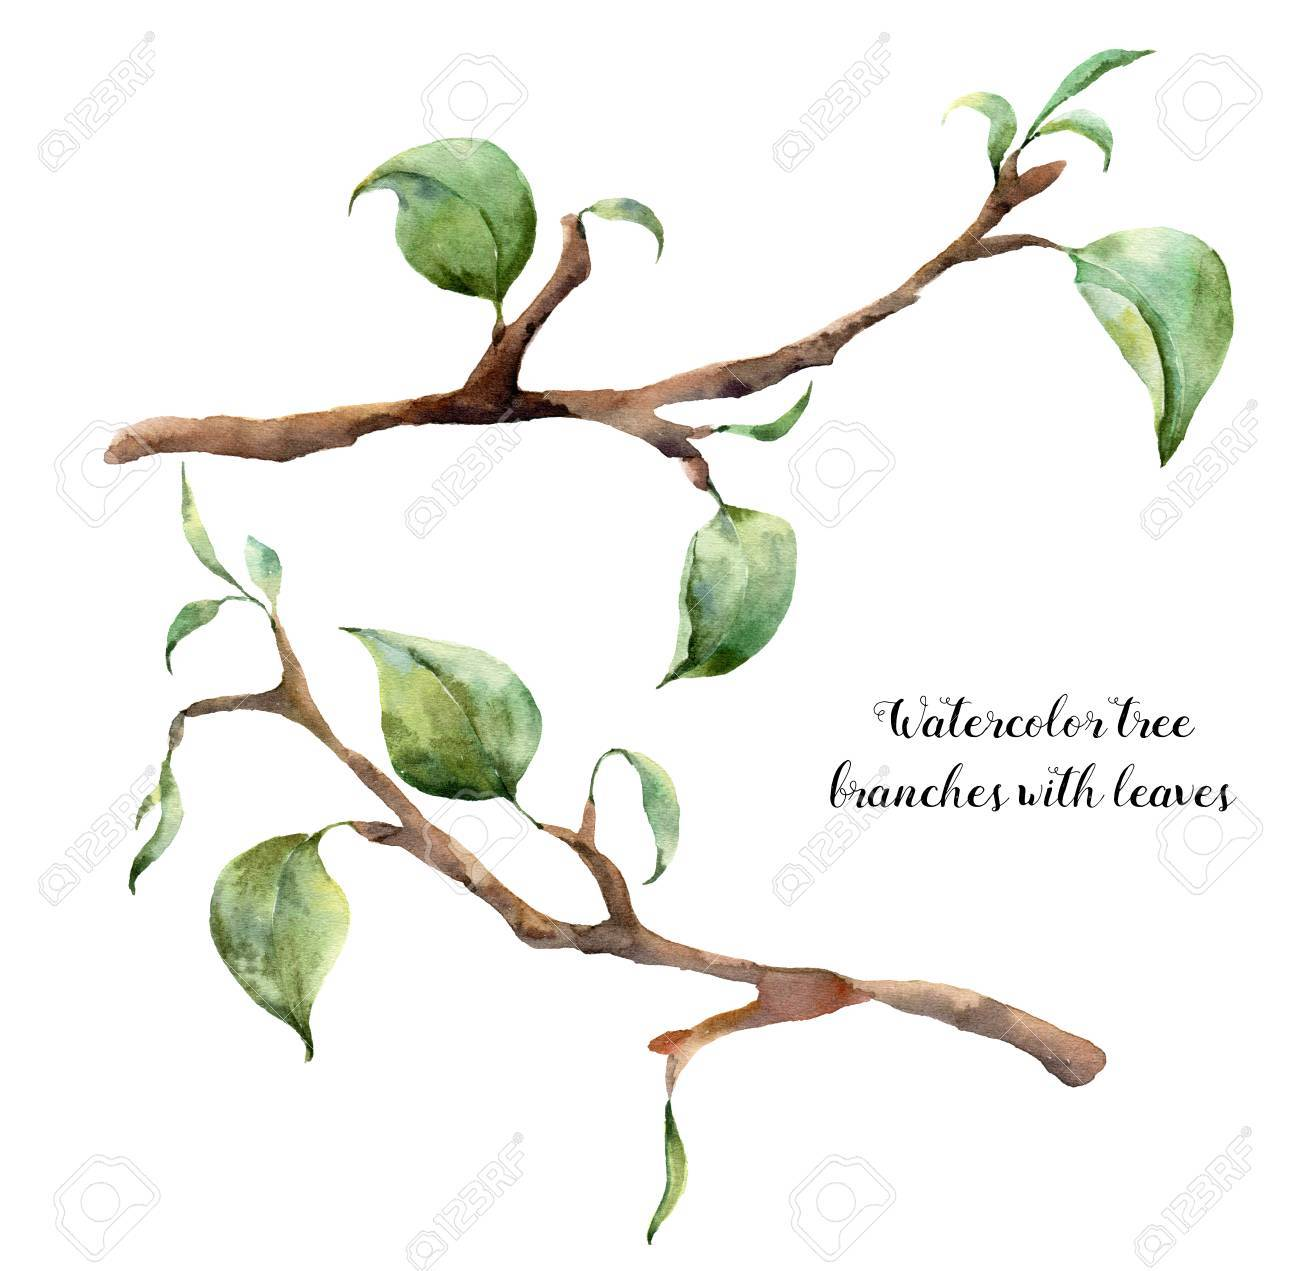 Watercolor Tree Branches With Leaves Hand Painted Floral Illustration Stock Photo Picture And Royalty Free Image Image 71133902